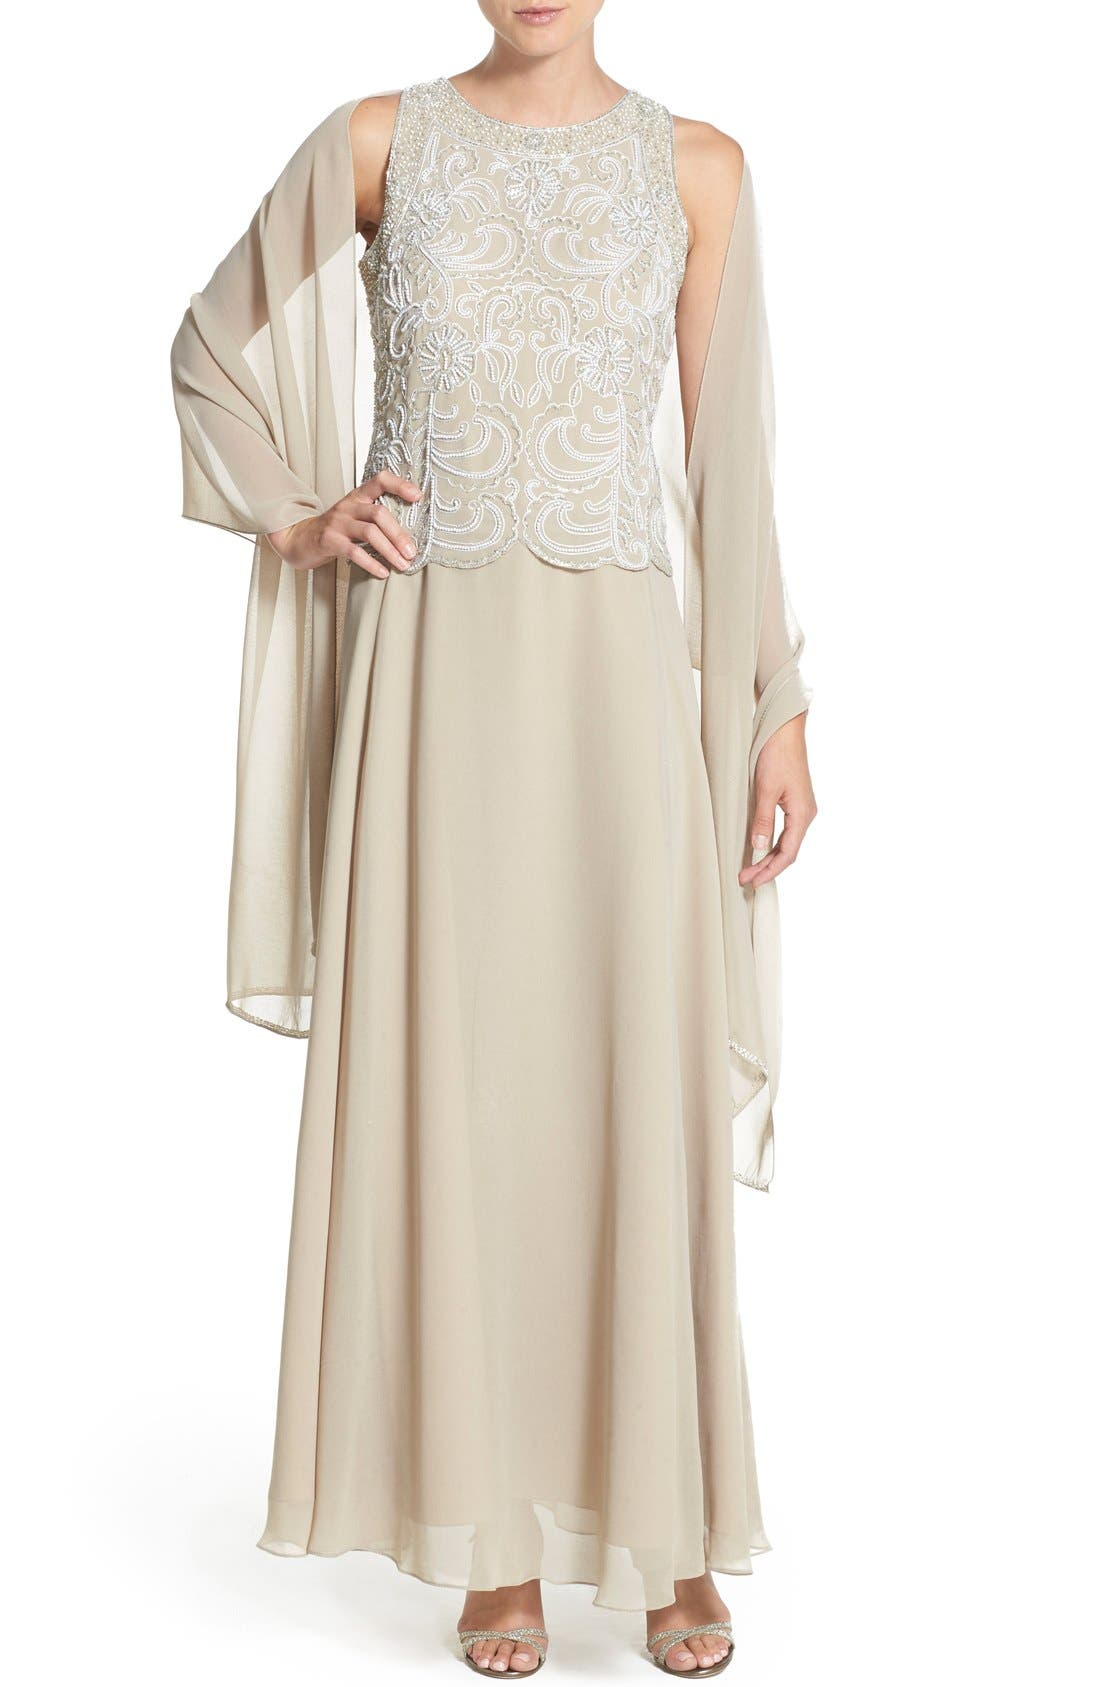 J KARA,                             Embellished Chiffon A-Line Gown with Shawl,                             Alternate thumbnail 5, color,                             250